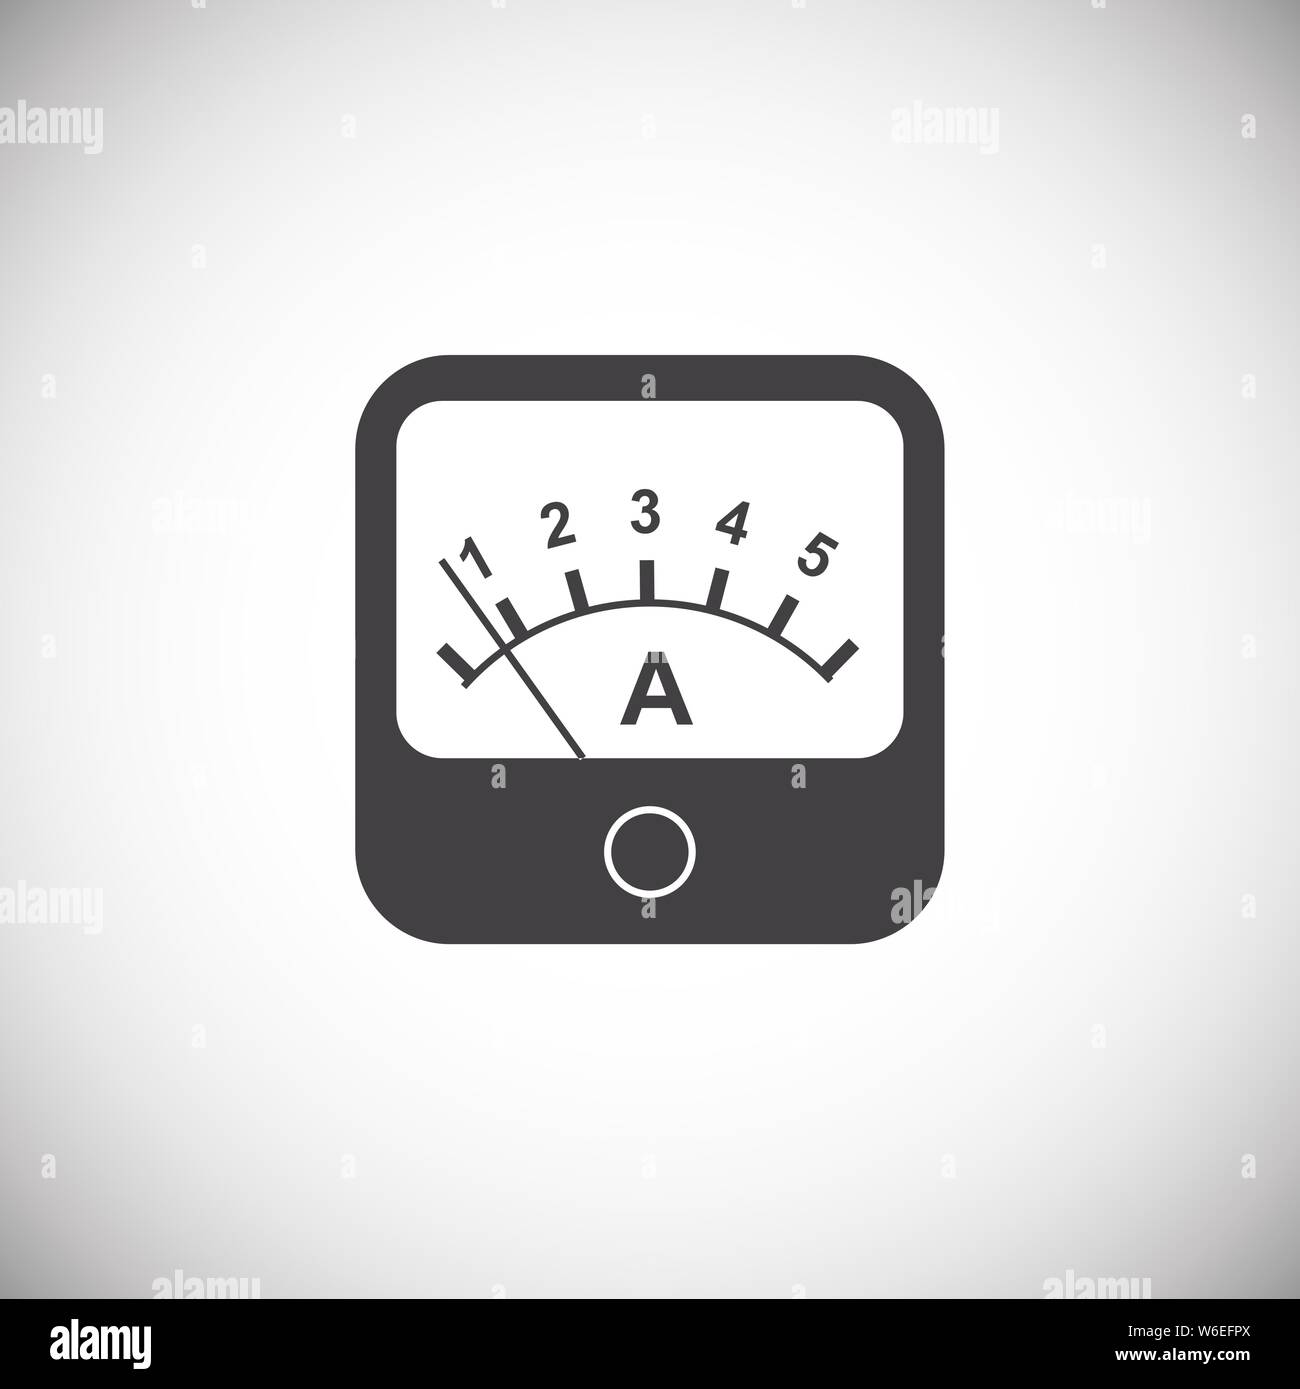 Measuring Tool Icon On Background For Graphic And Web Design Simple Illustration Internet Concept Symbol For Website Button Or Mobile App Stock Vector Image Art Alamy